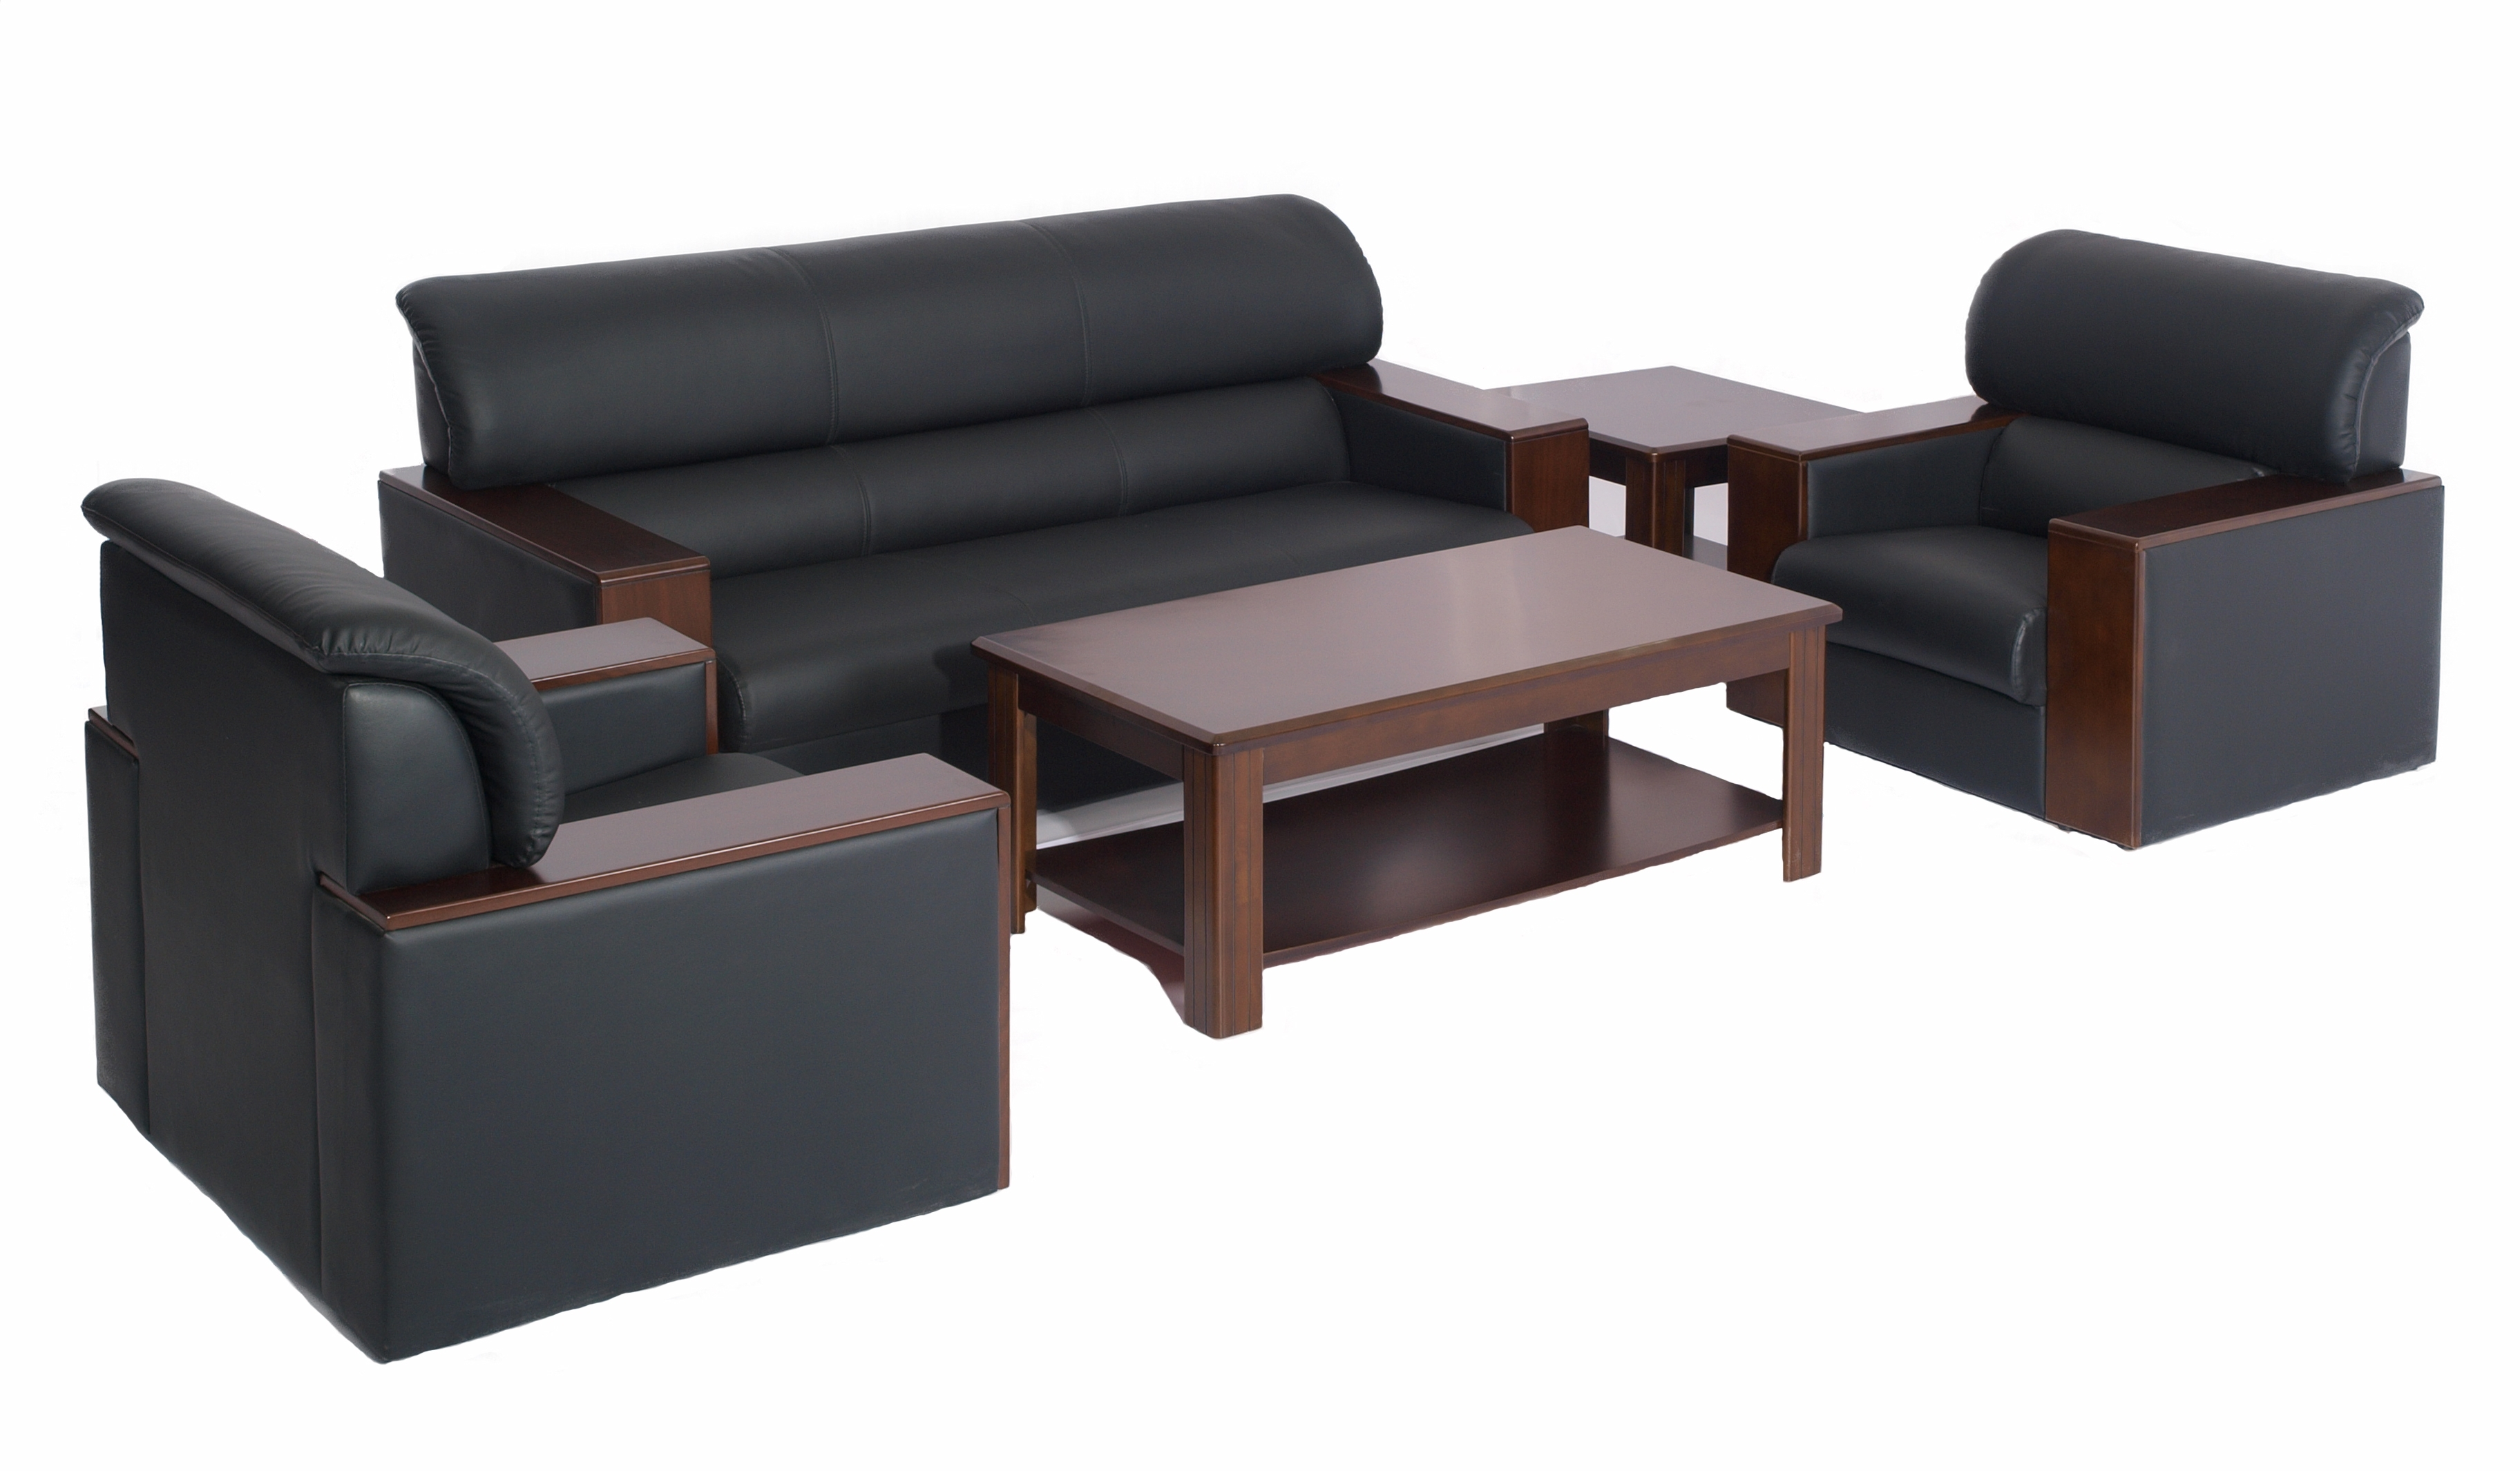 Preferred Office Sofas Throughout Best Office Sofa 98 For Your Sofas And Couches Ideas With Office Sofa (Gallery 1 of 20)